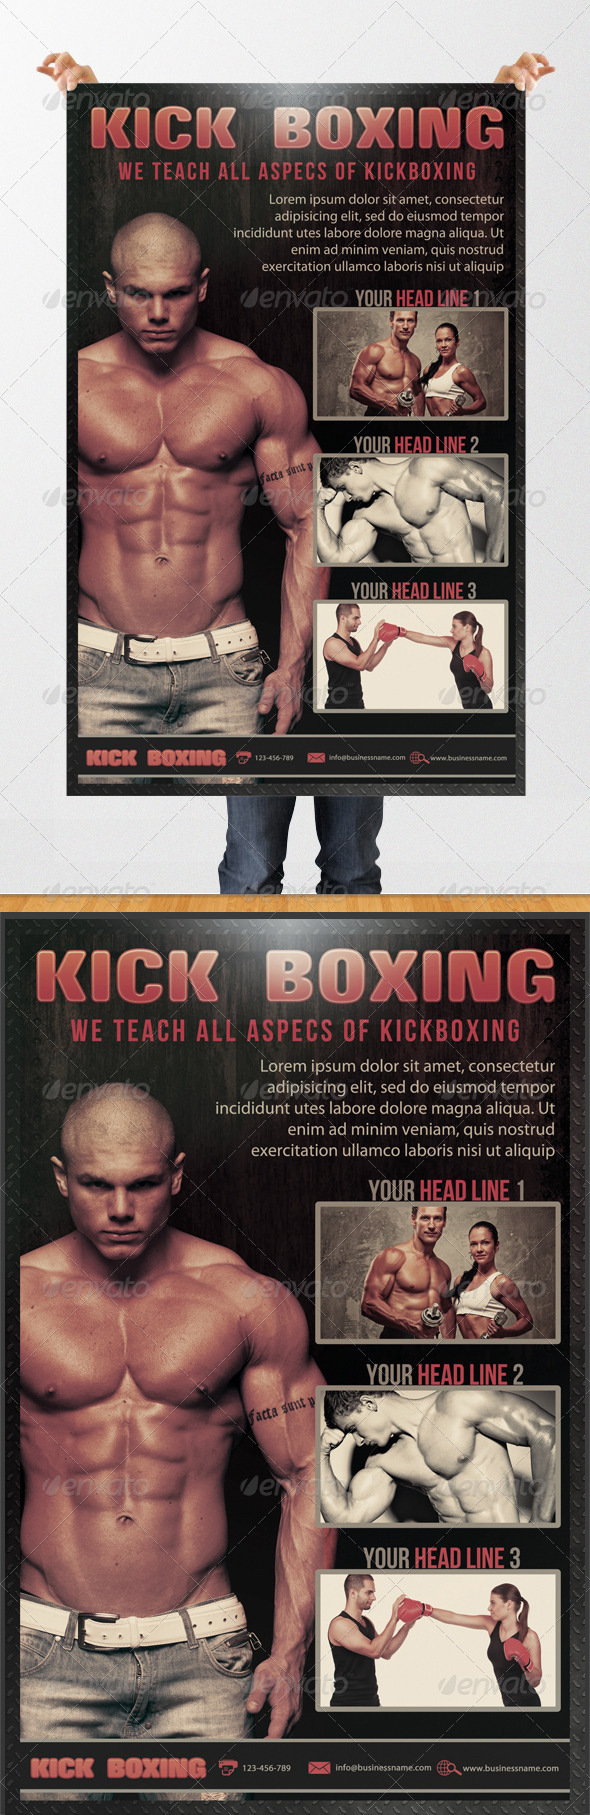 GraphicRiver Kick Boxing Flyer 3736980